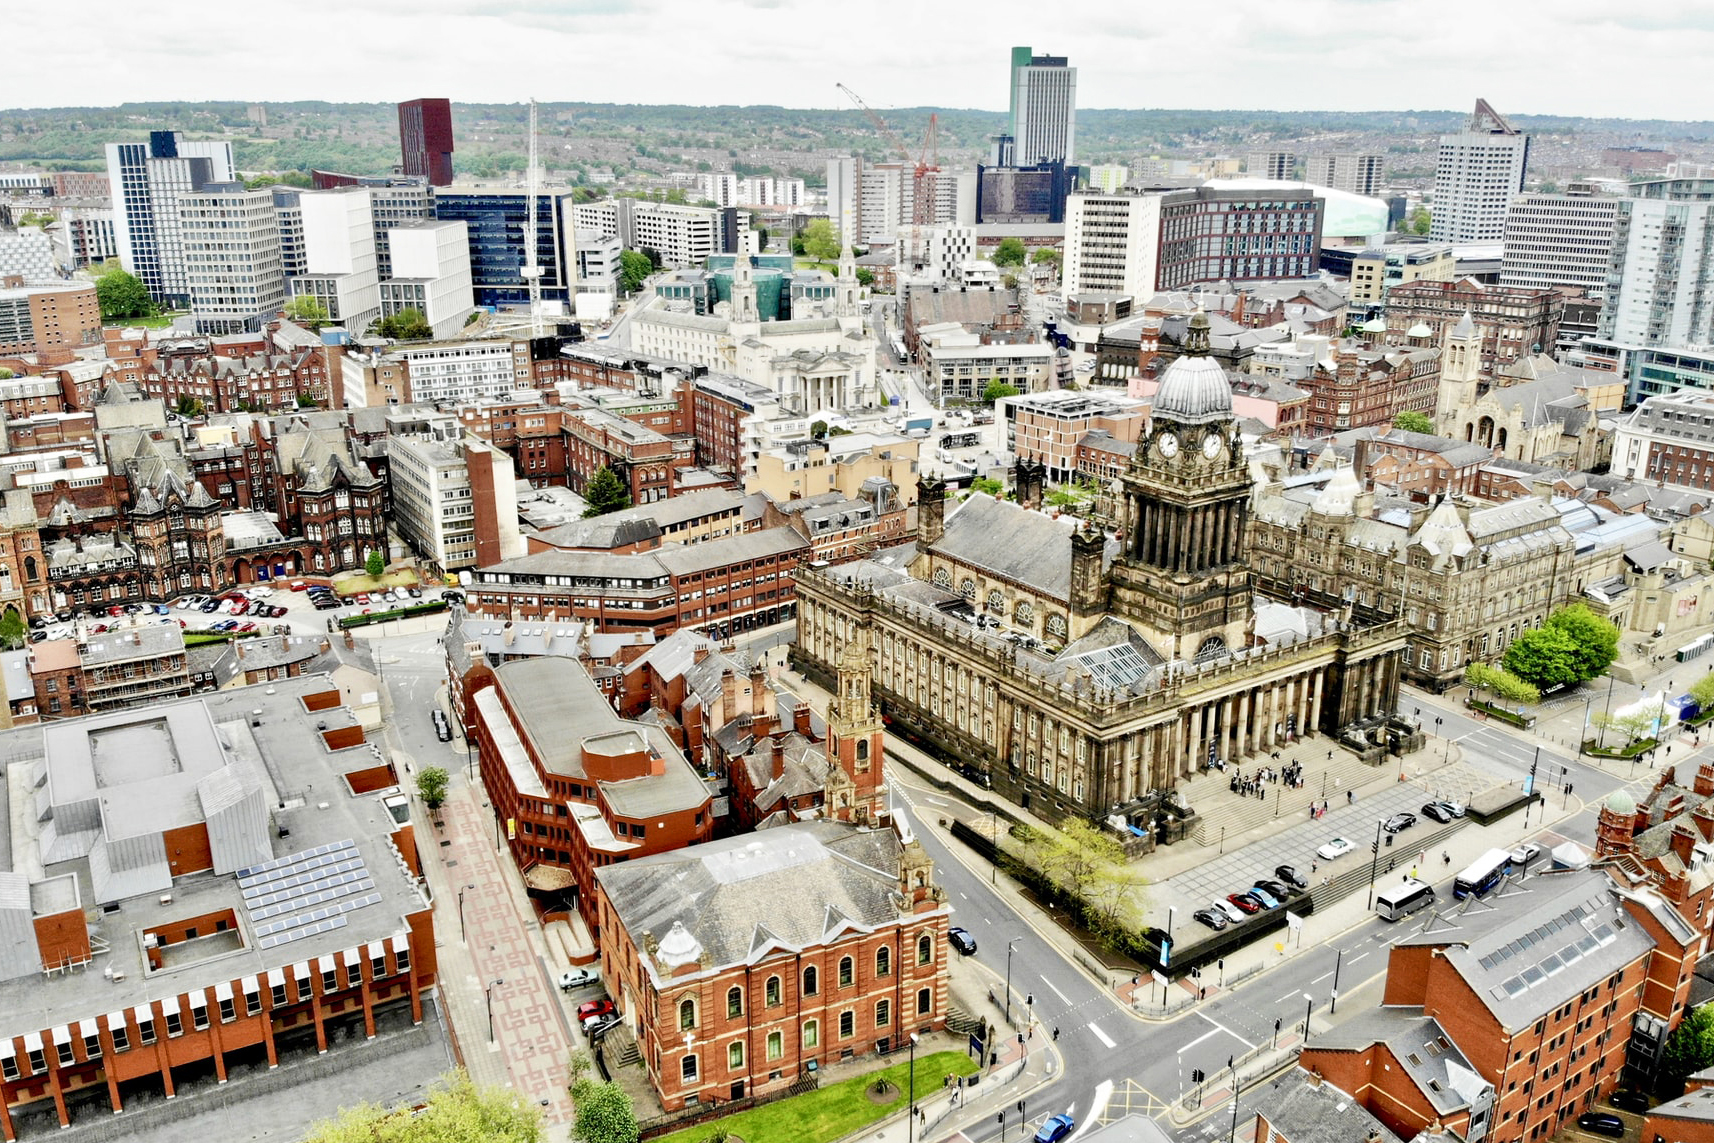 Leeds from above